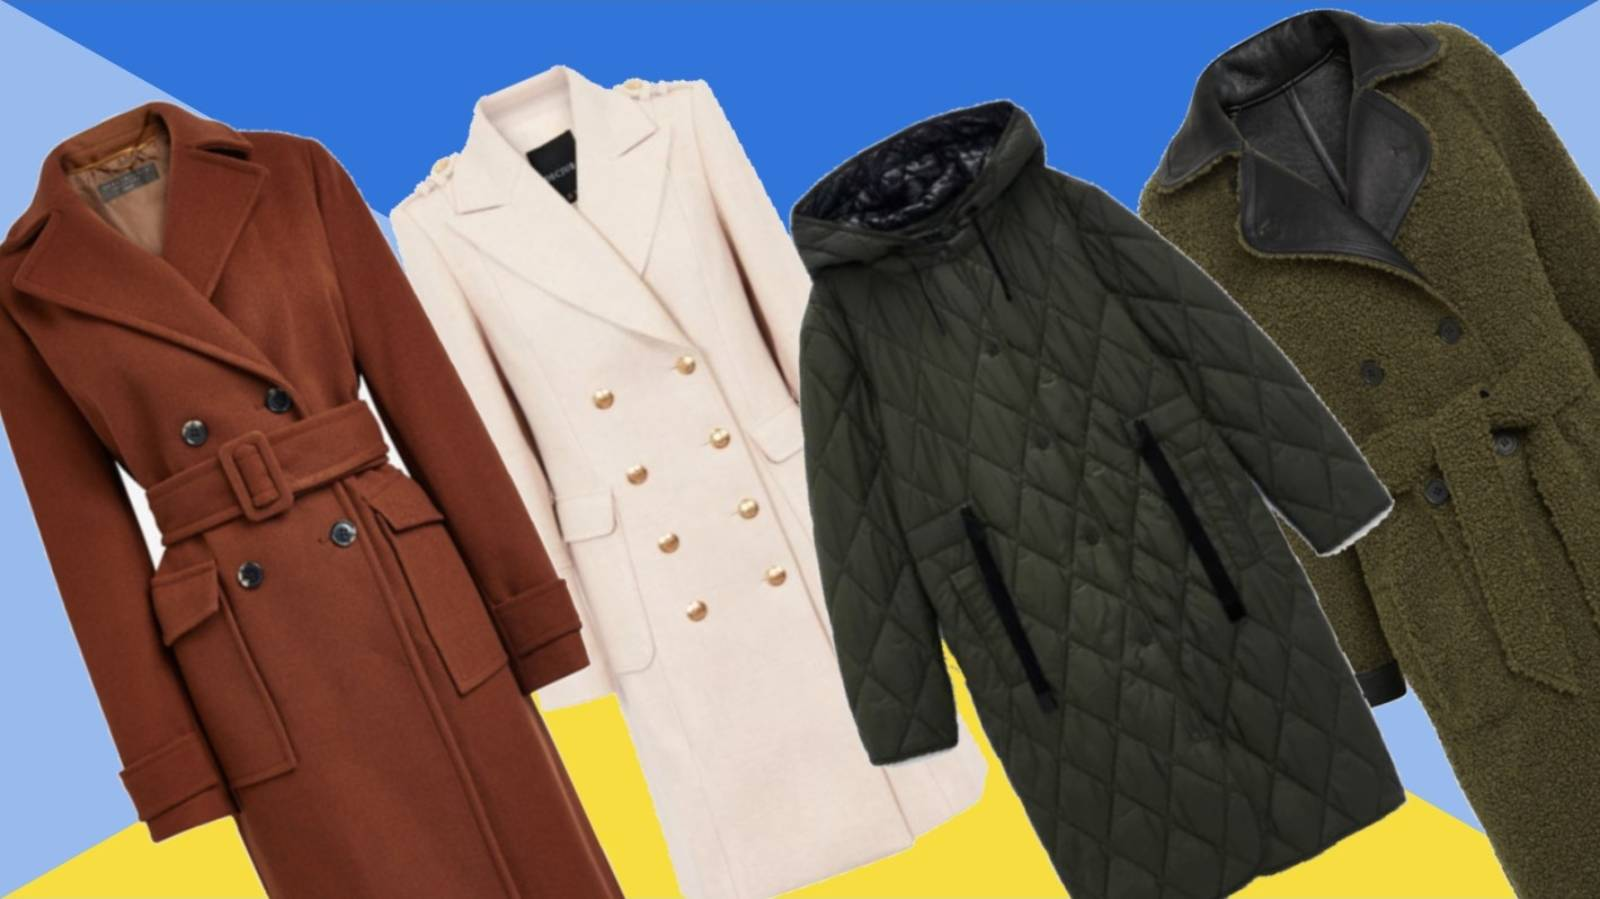 How to pick a coat that will last for years